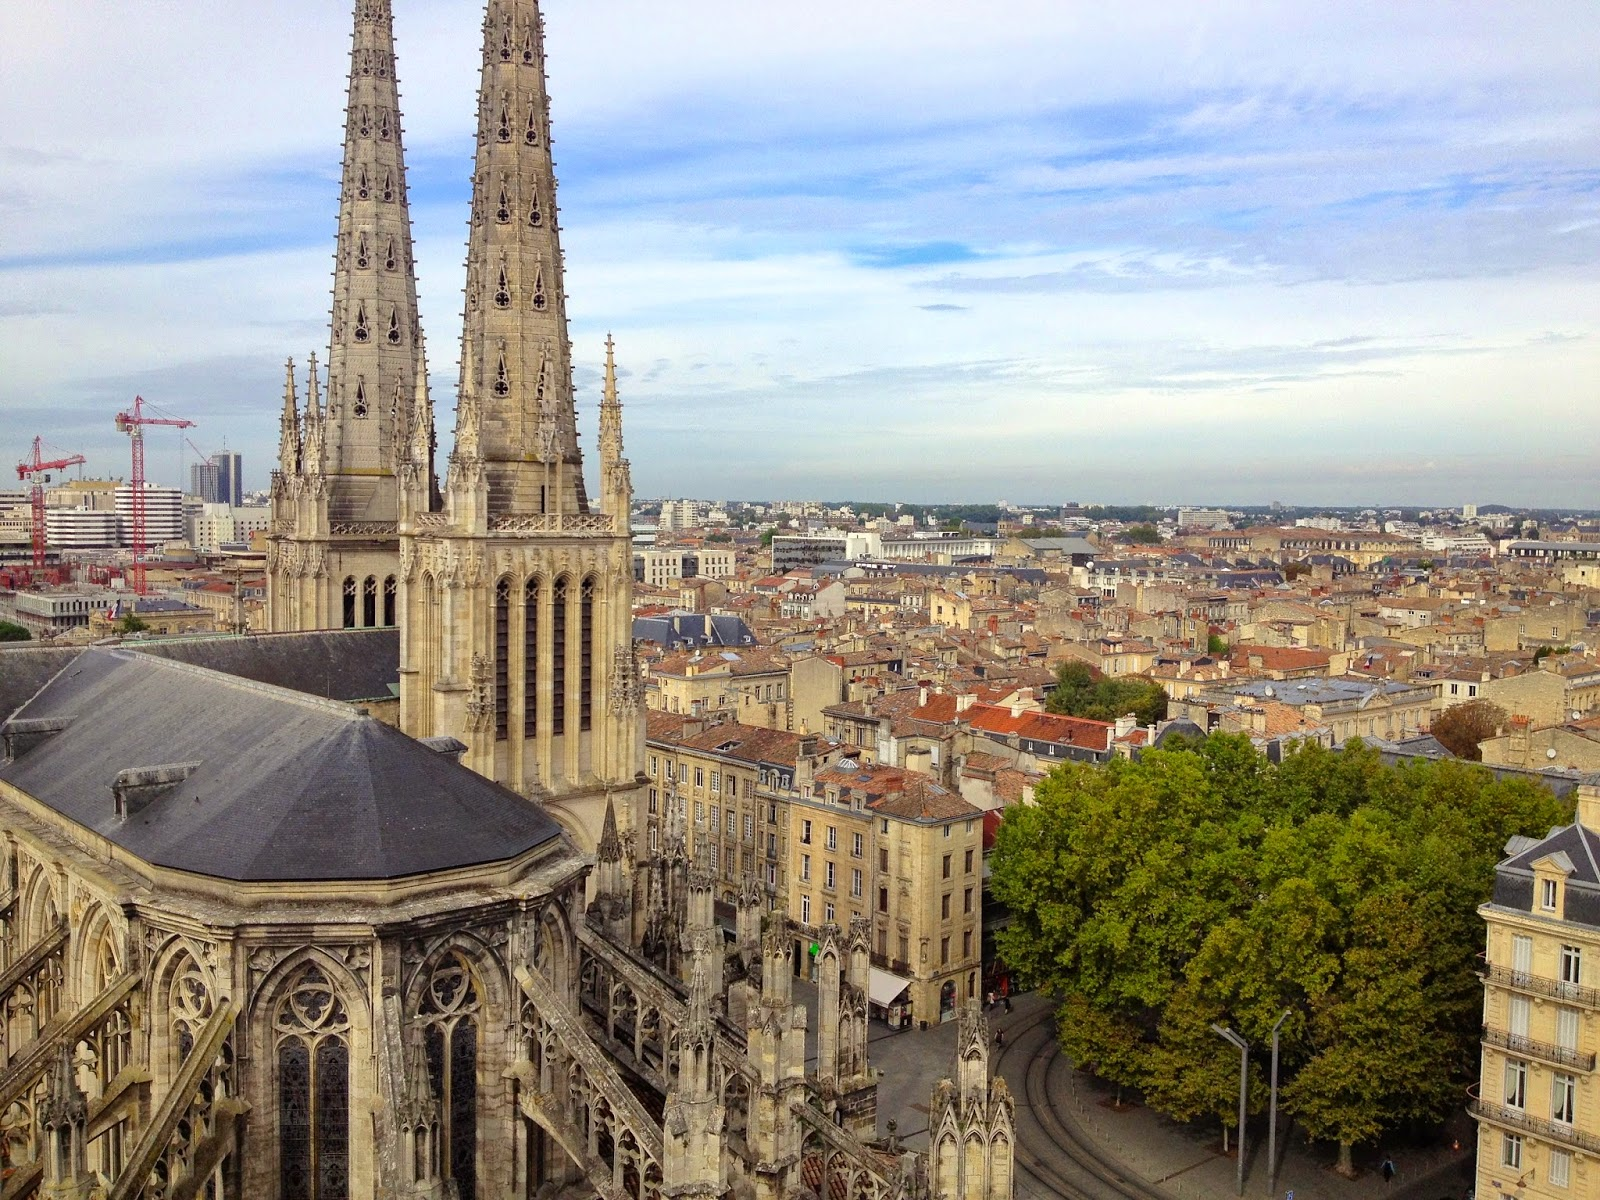 Am ricaine girl top 15 places to see in bordeaux france for Bordeaux france